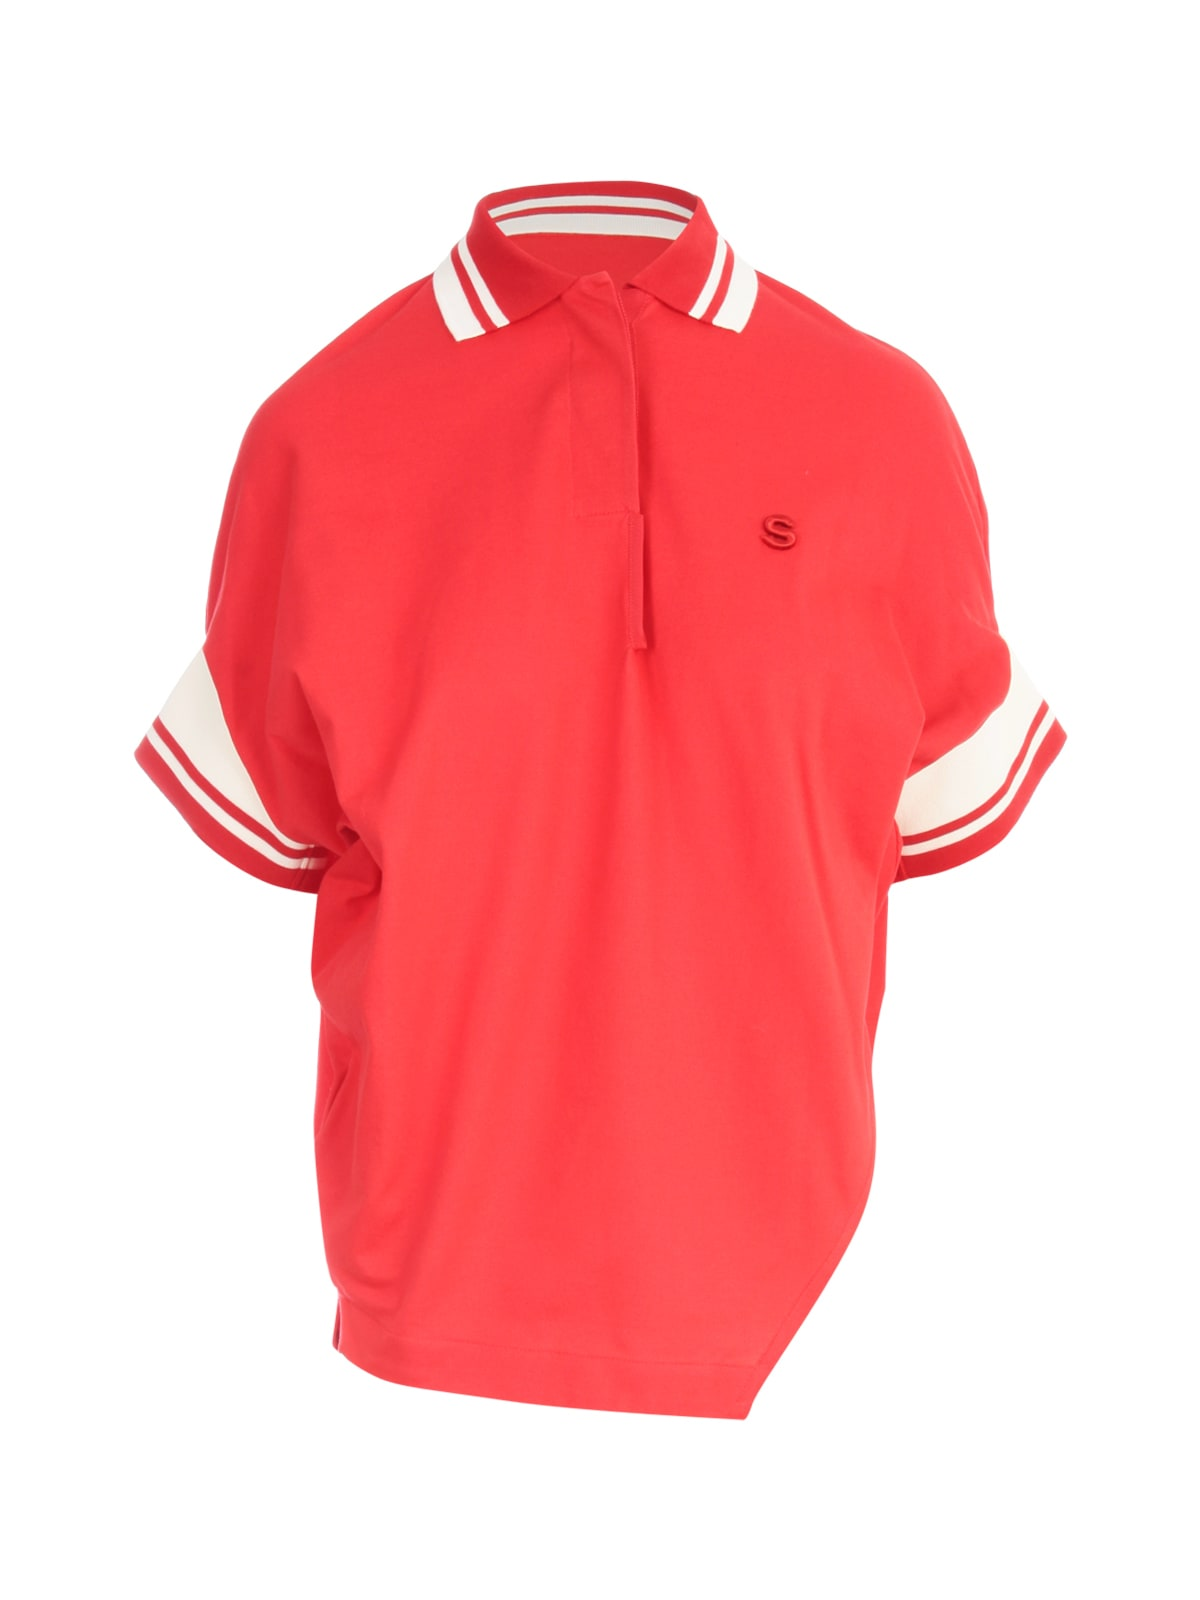 Sacai COTTON JERSEY ASYMMETRICAL POLO SHIRT